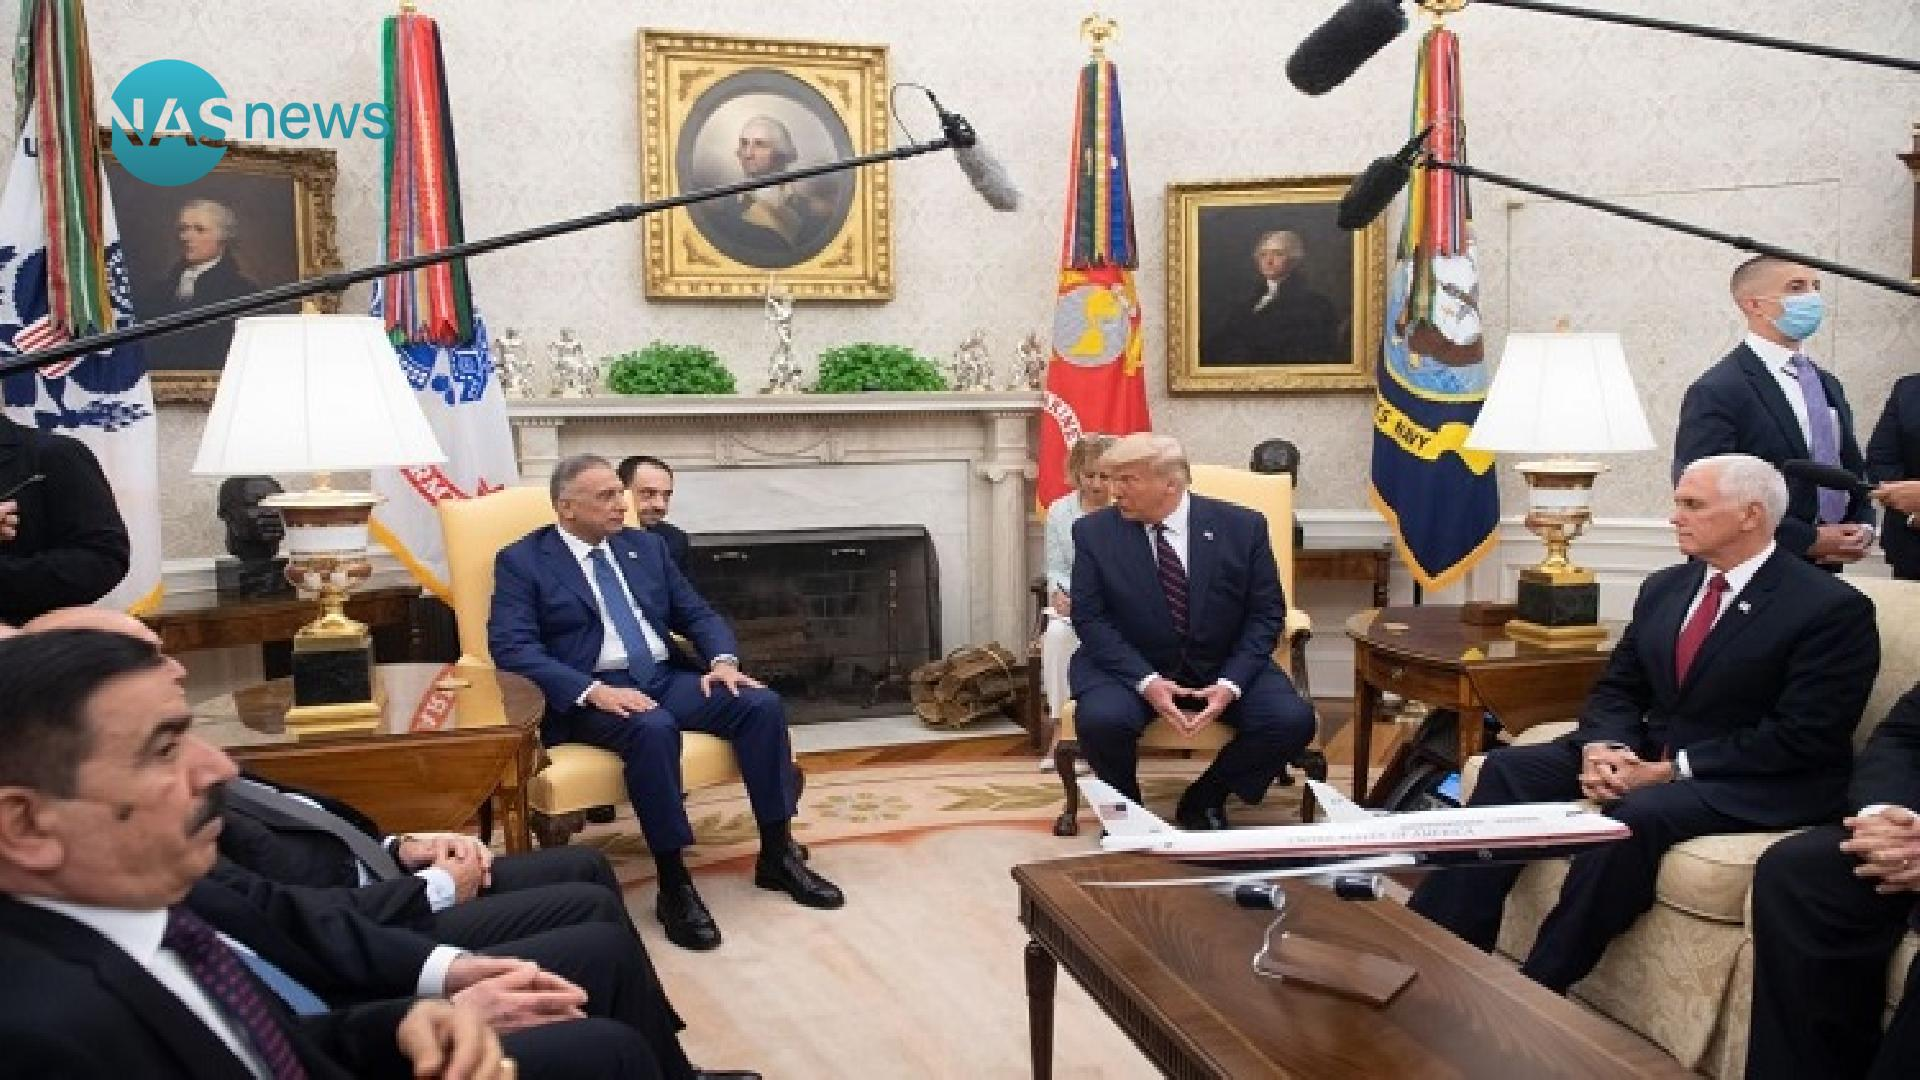 Al-Kazemi and Trump meet: The US President talks about the military withdrawal from Iraq E9f0e0130-38326-202008200720